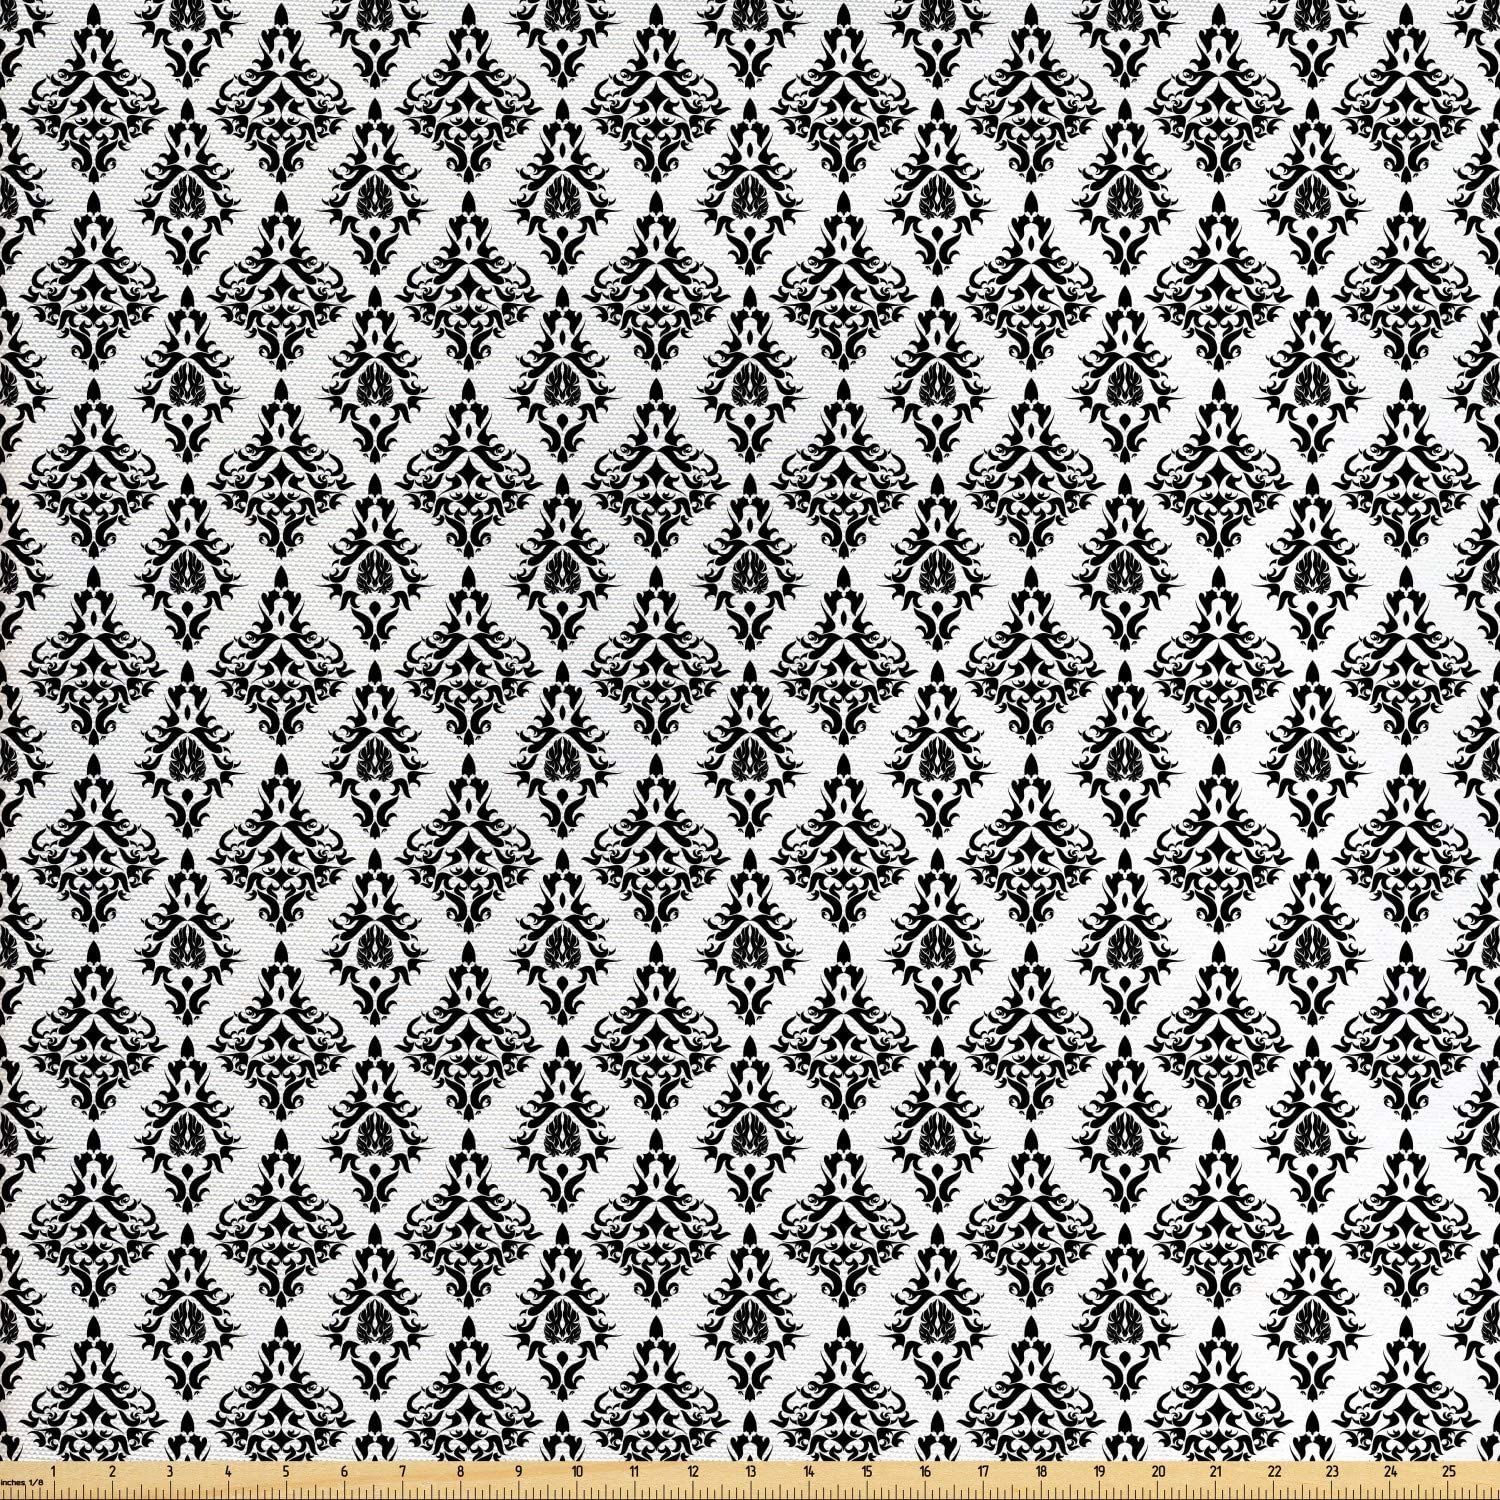 Ambesonne Damask Fabric by The Yard, Damask Pattern Tiles Interchangeable Retro Nostalgic Modern Baroque Stencil Art, Decorative Fabric for Upholstery and Home Accents, 1 Yard, Black White